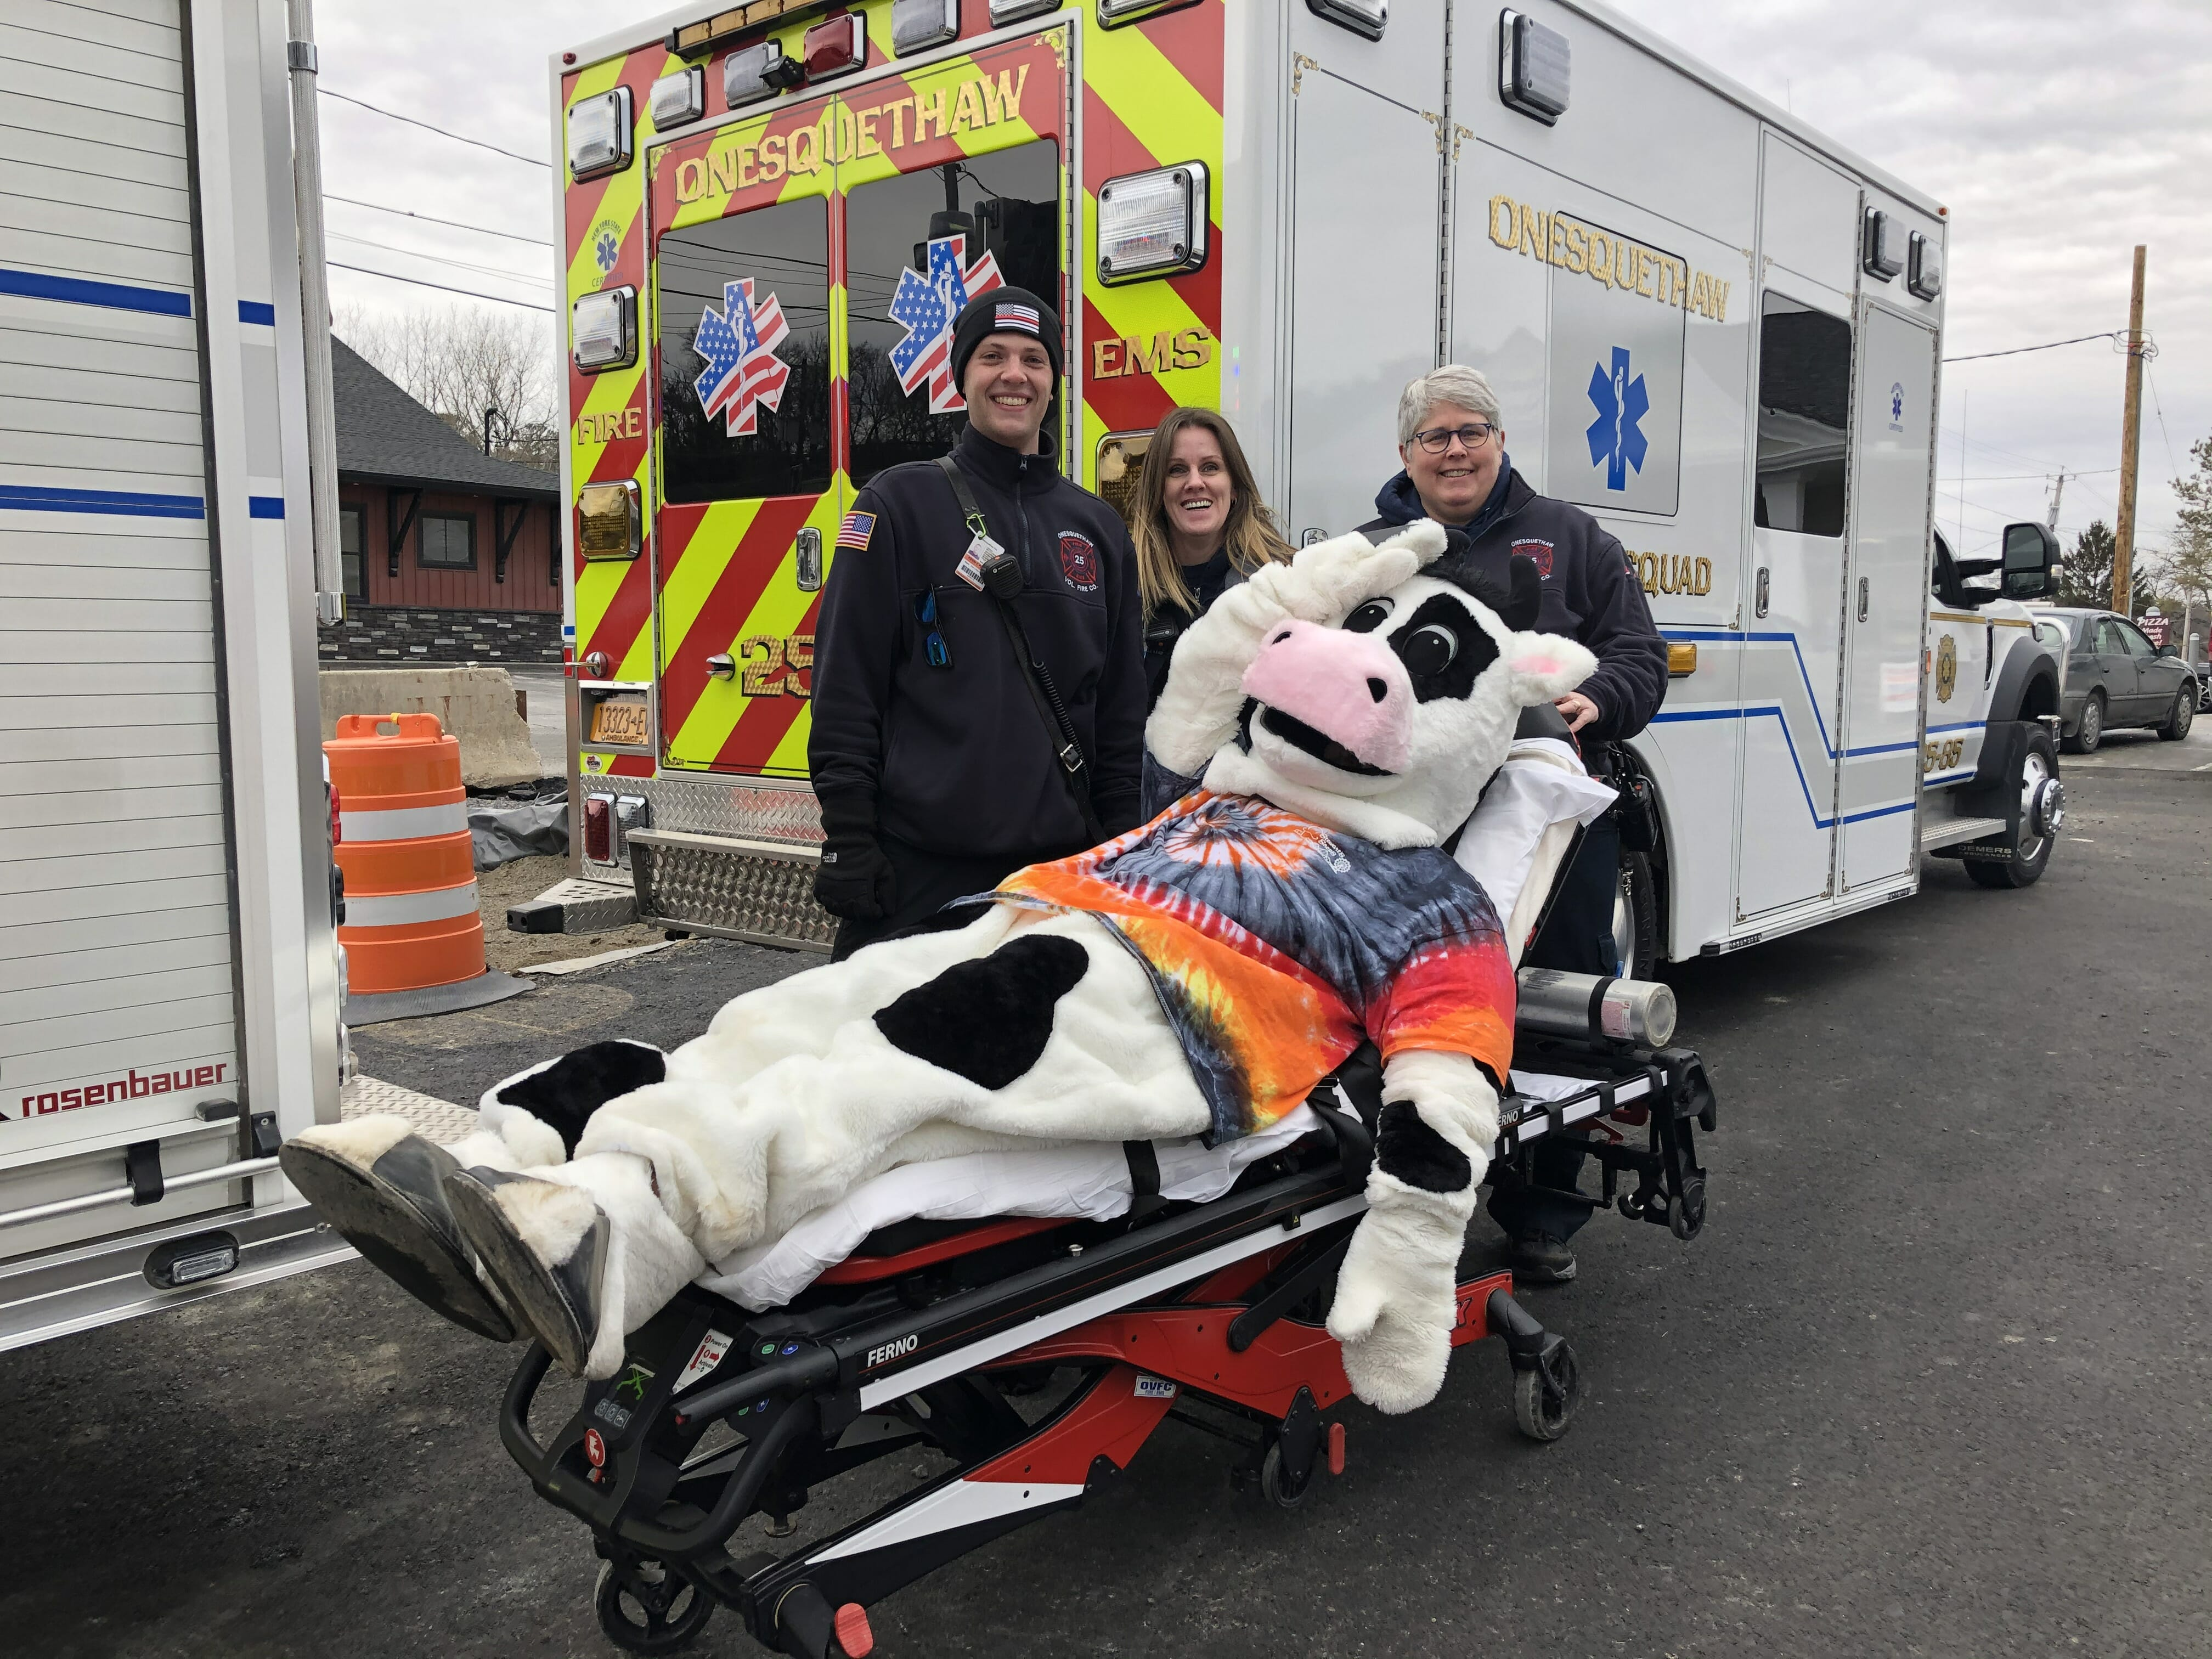 Flavor the cow pretending to be sick and three EMTs